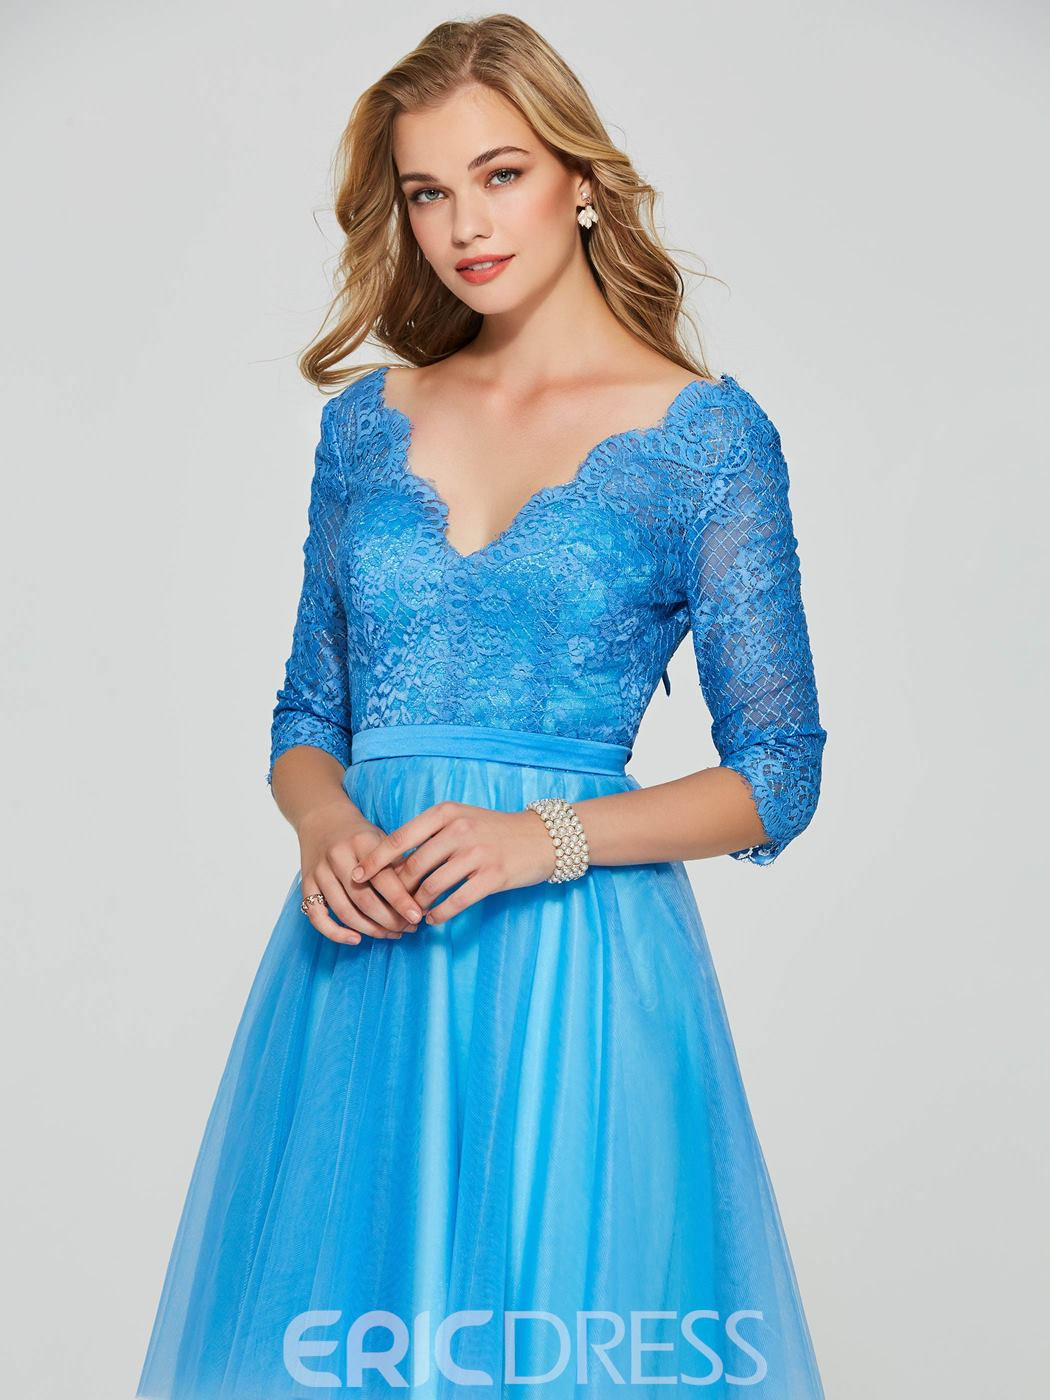 Ericdress 3/4 Sleeve Lace Bowknot Short Homecoming Dress